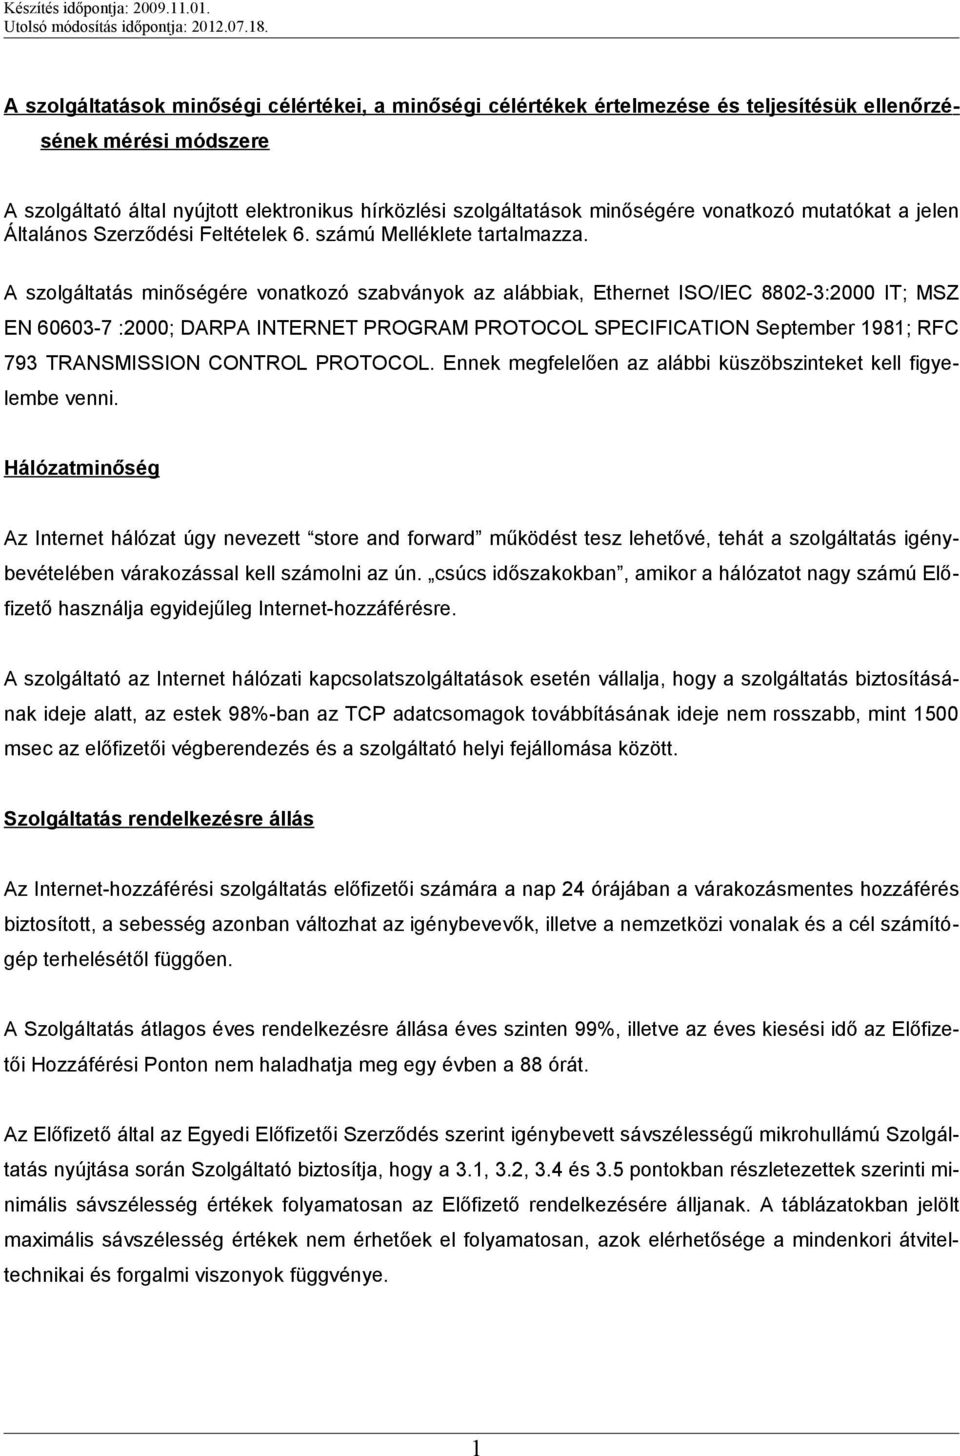 A szolgáltatás minőségére vonatkozó szabványok az alábbiak, Ethernet ISO/IEC 8802-3:2000 IT; MSZ EN 60603-7 :2000; DARPA INTERNET PROGRAM PROTOCOL SPECIFICATION September 1981; RFC 793 TRANSMISSION